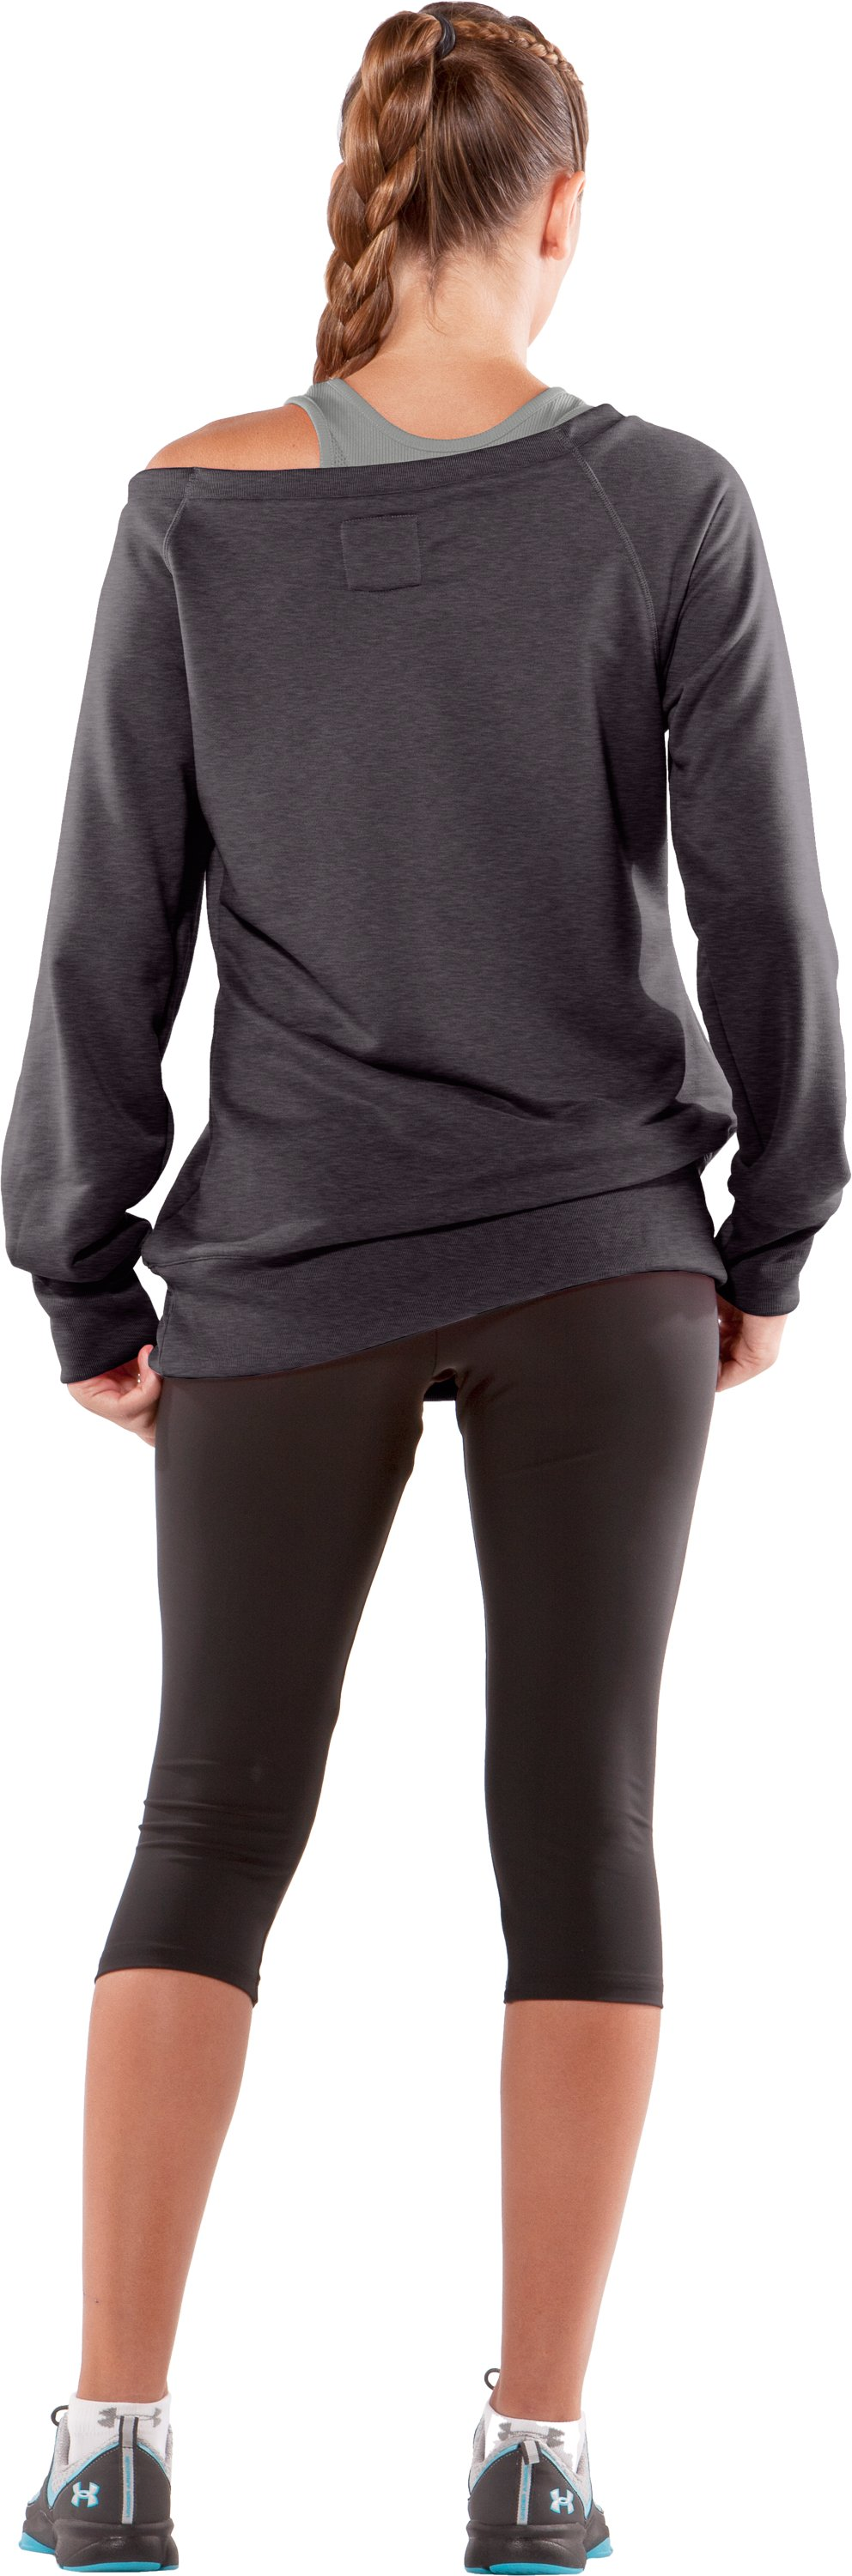 Women's Varsity Sweatshirt, Carbon Heather, Back